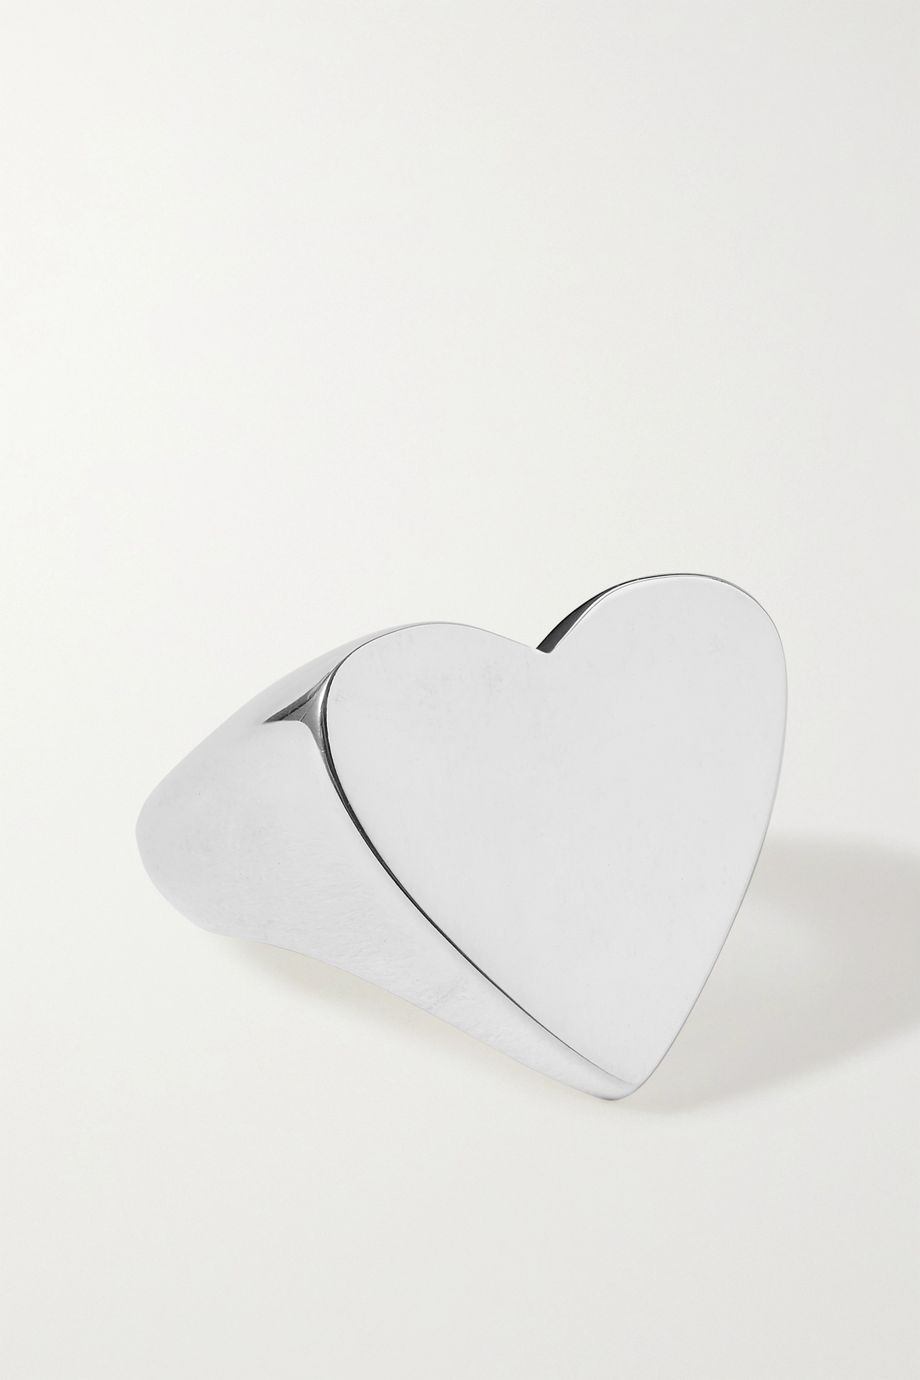 Sophie Buhai + NET SUSTAIN Heart silver ring